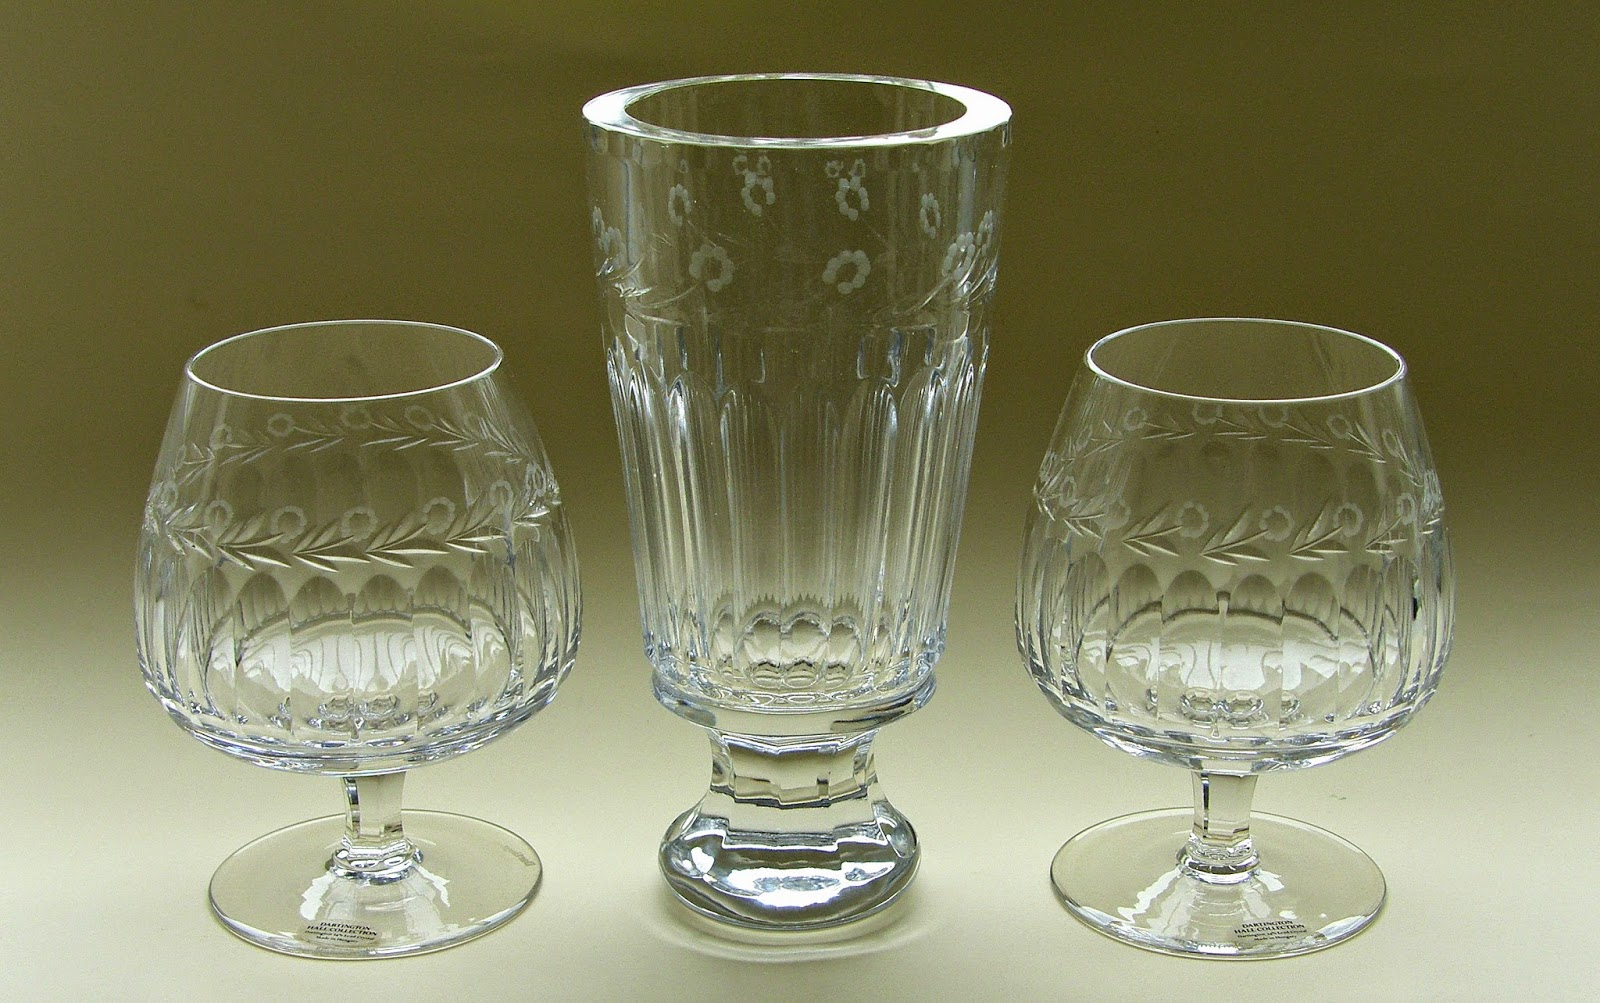 Frank thrower glass designs shelley design dh78 vasebowl dh1355 brandy balloons in clear cut crystal reviewsmspy